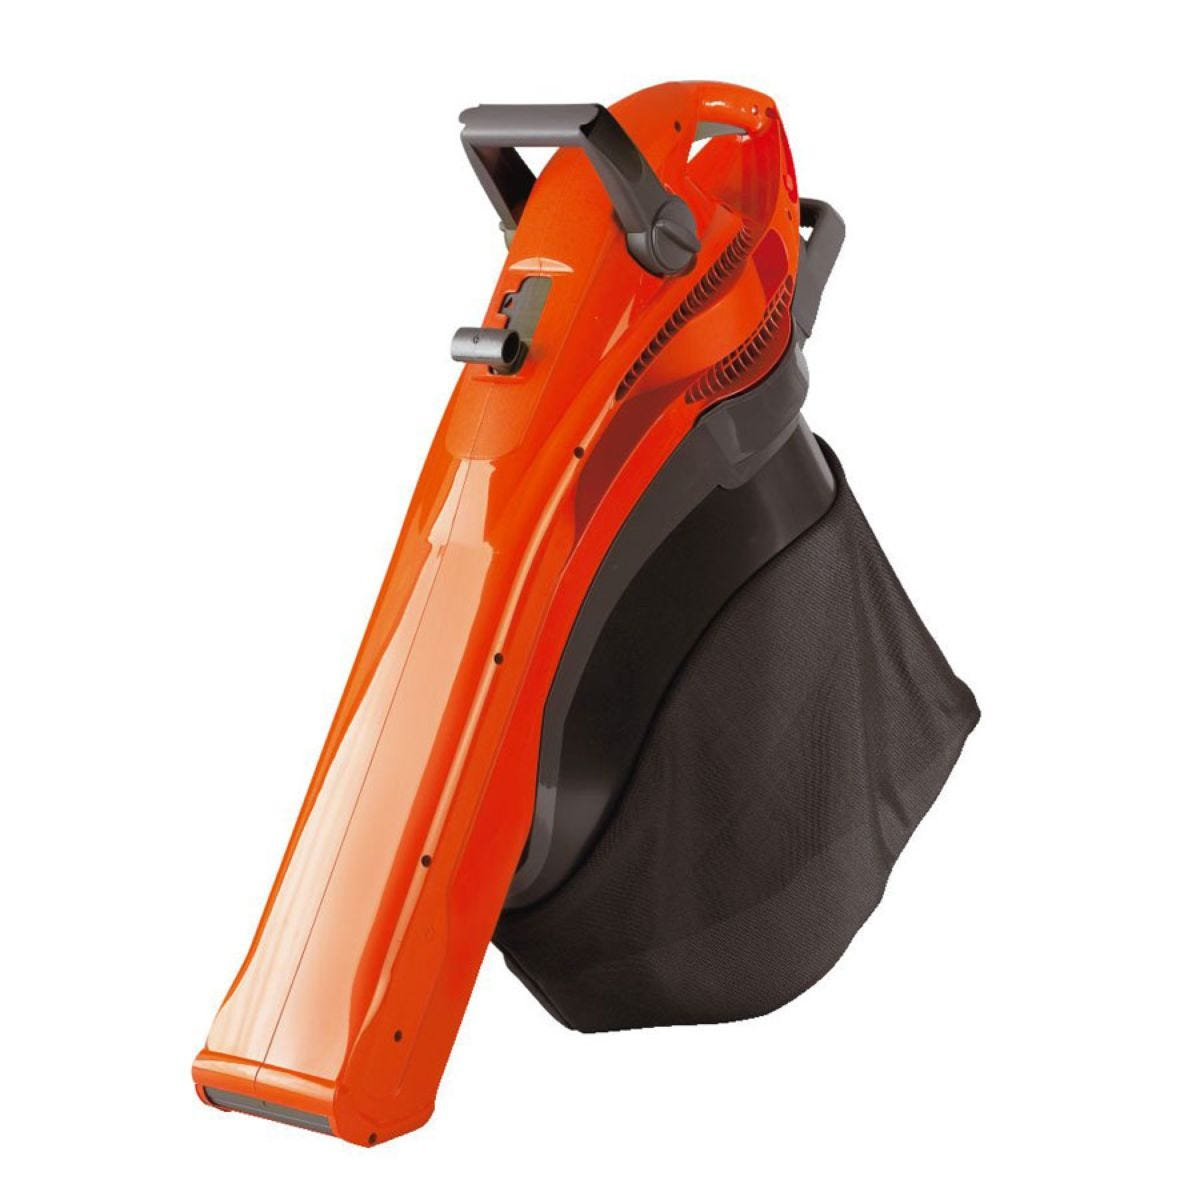 Flymo 2700W GardenVac 3-in-1 Electric Garden Vacuum, Leaf Blower and Mulcher with 40L Collection Bag and 12m Cable